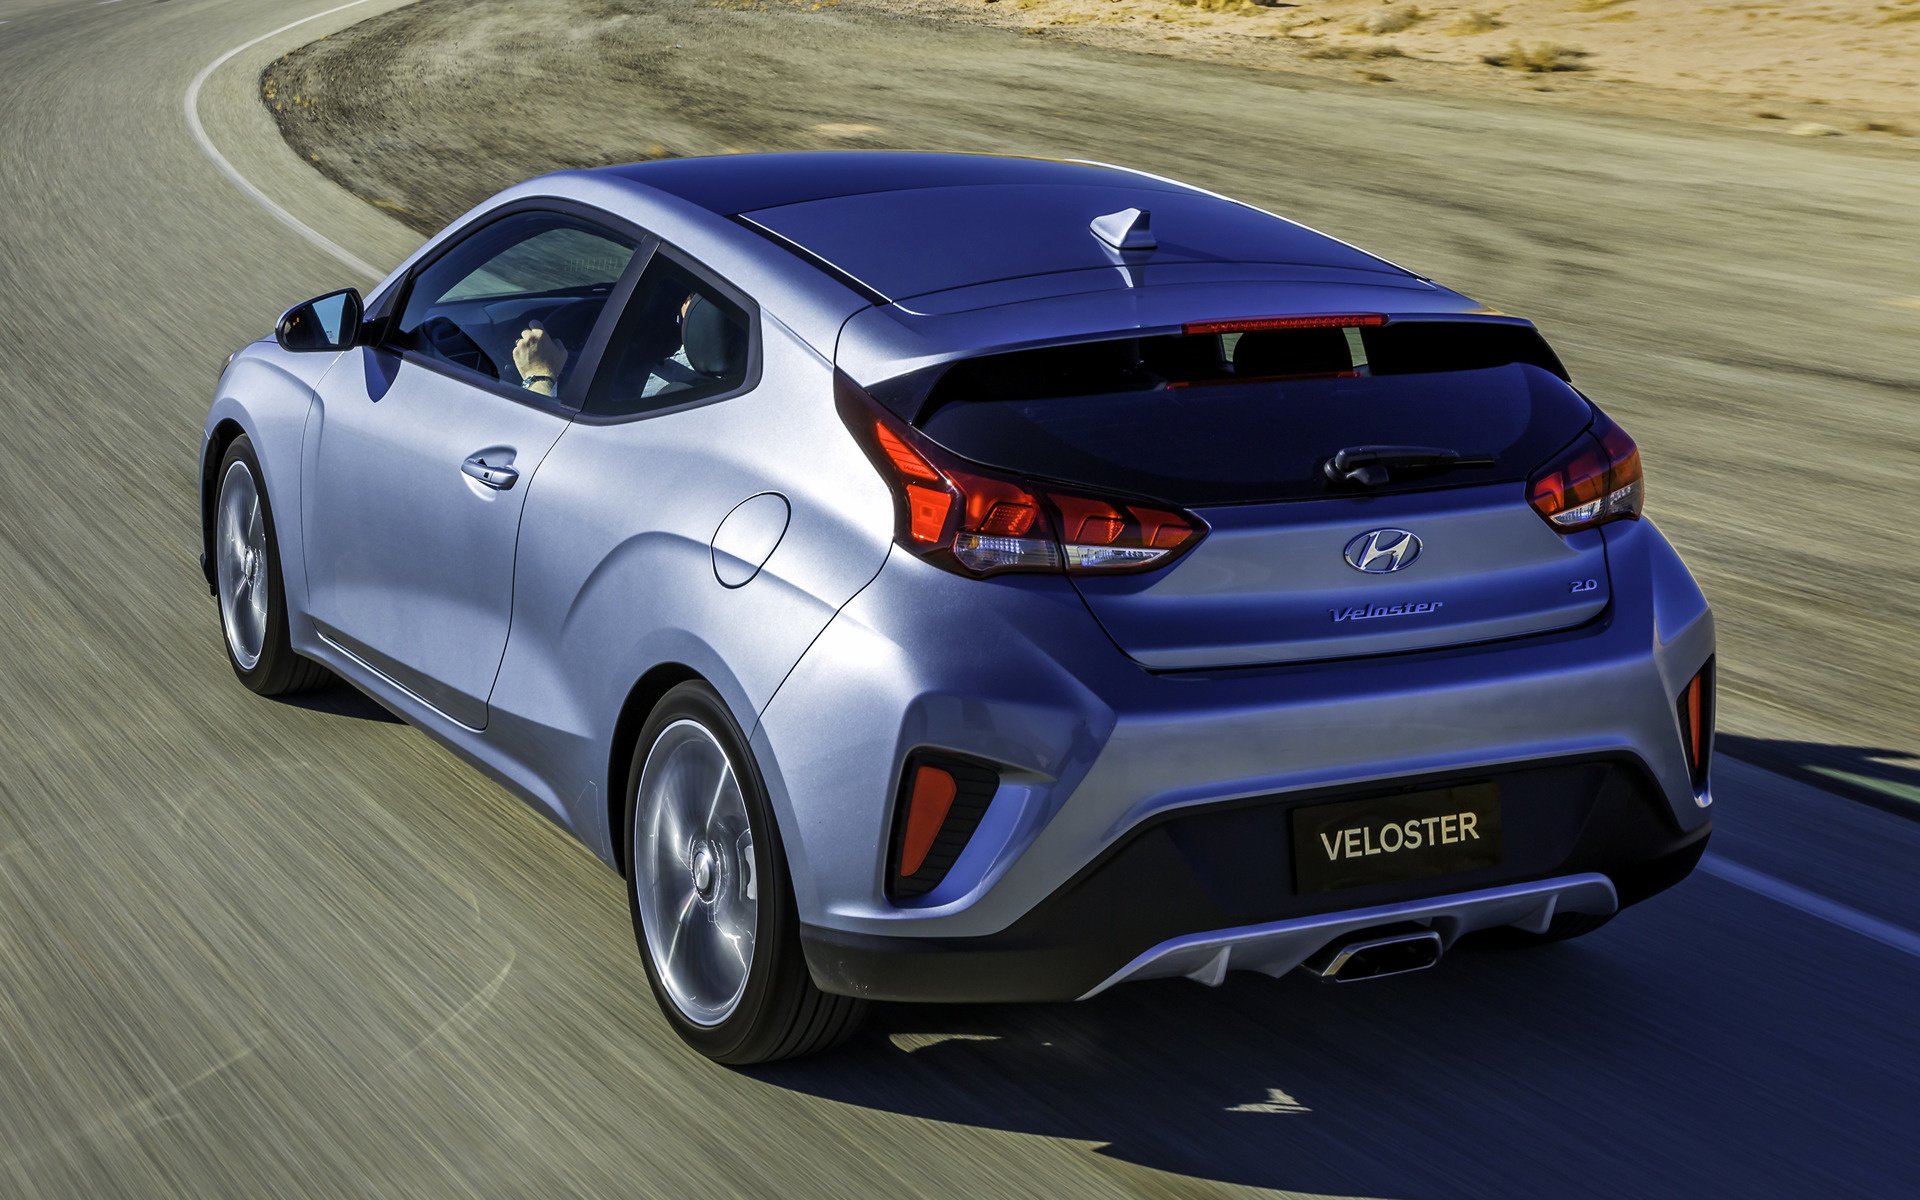 2019 Hyundai Veloster US   Wallpapers and HD Images Car Pixel 1920x1200